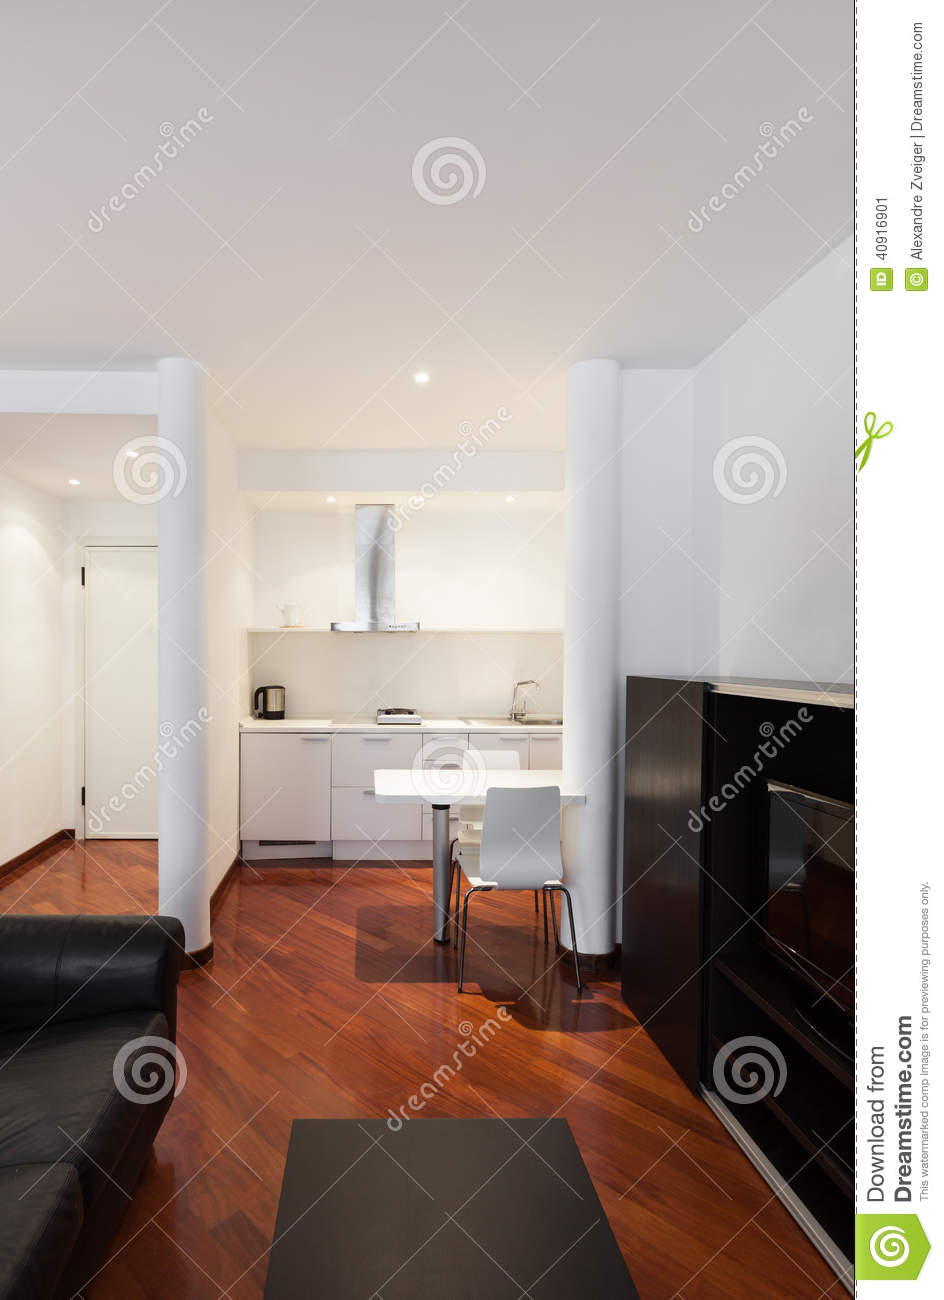 Nice home stock photo image 40916901 Nice house interior